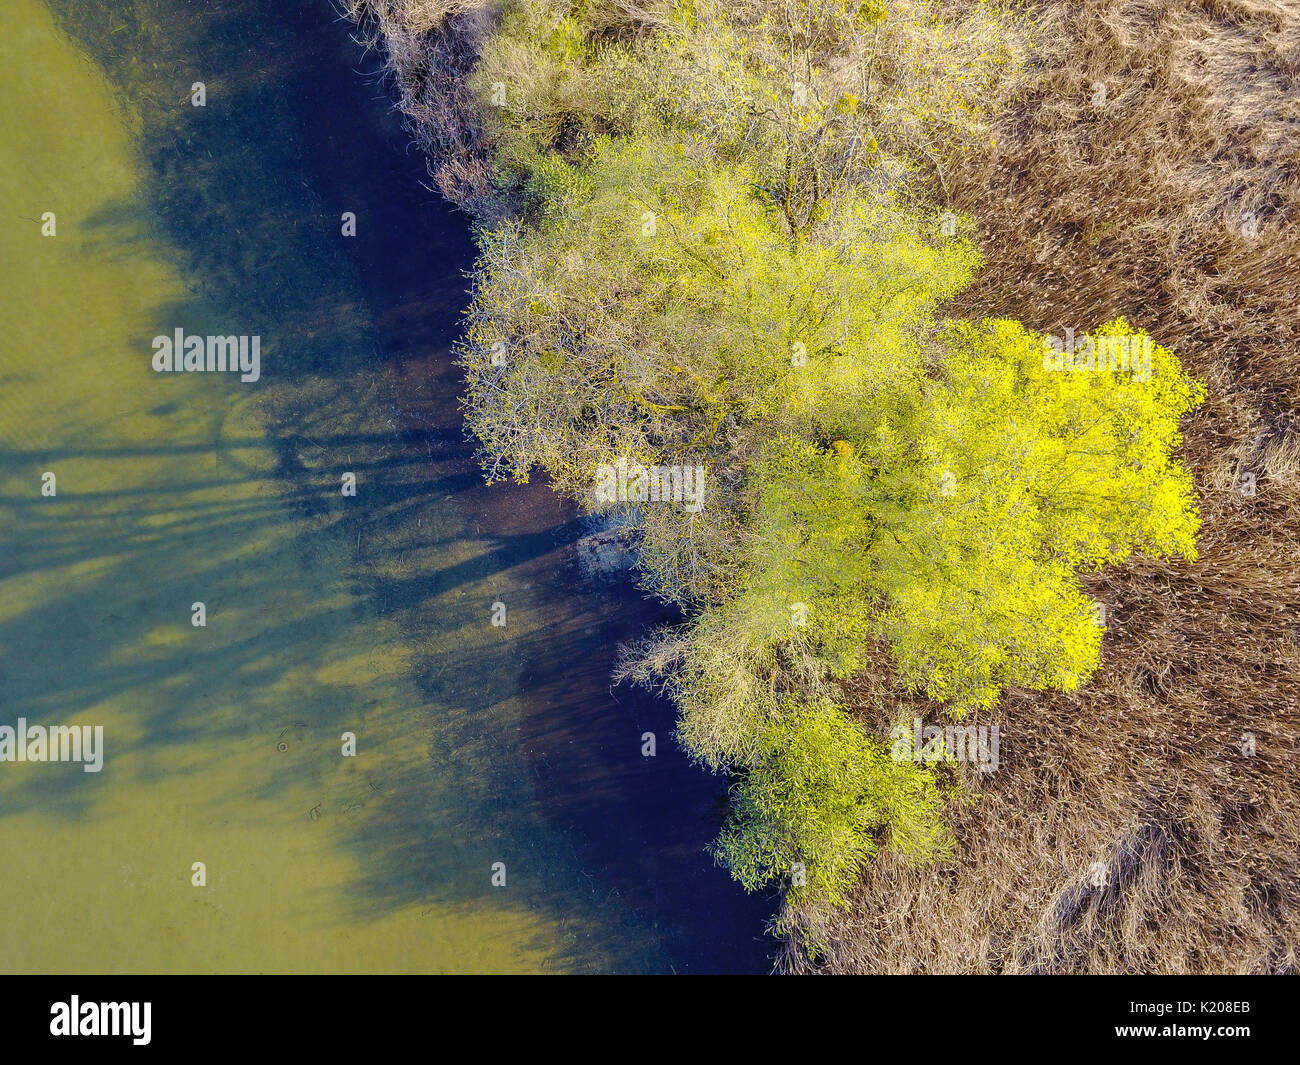 Aerial view, tree from above, aerial view, Prien am Chiemsee, Upper Bavaria, Bavaria, Germany Stock Photo